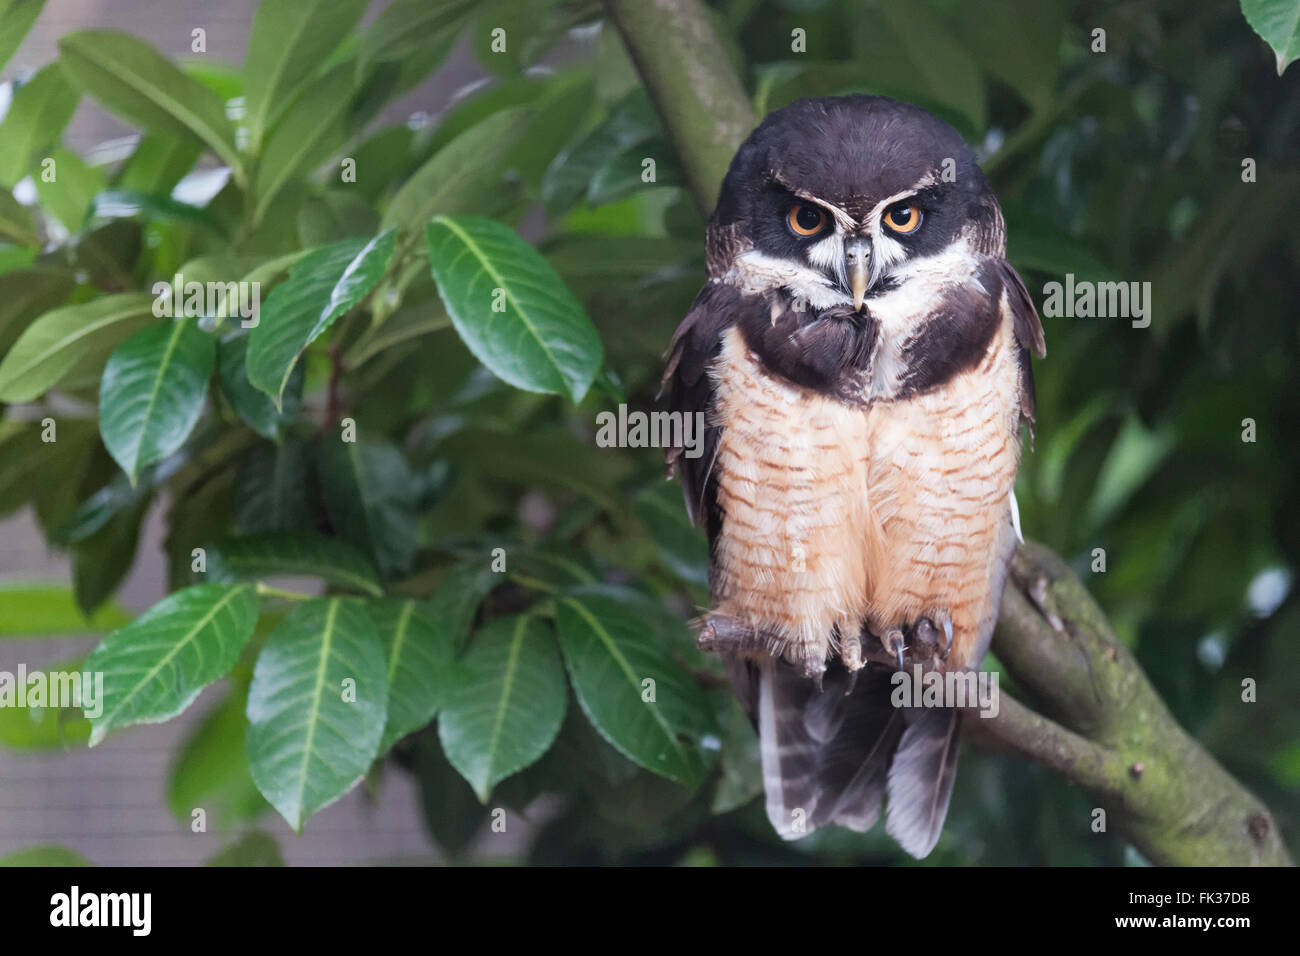 Spectacled owl portrait - Stock Image